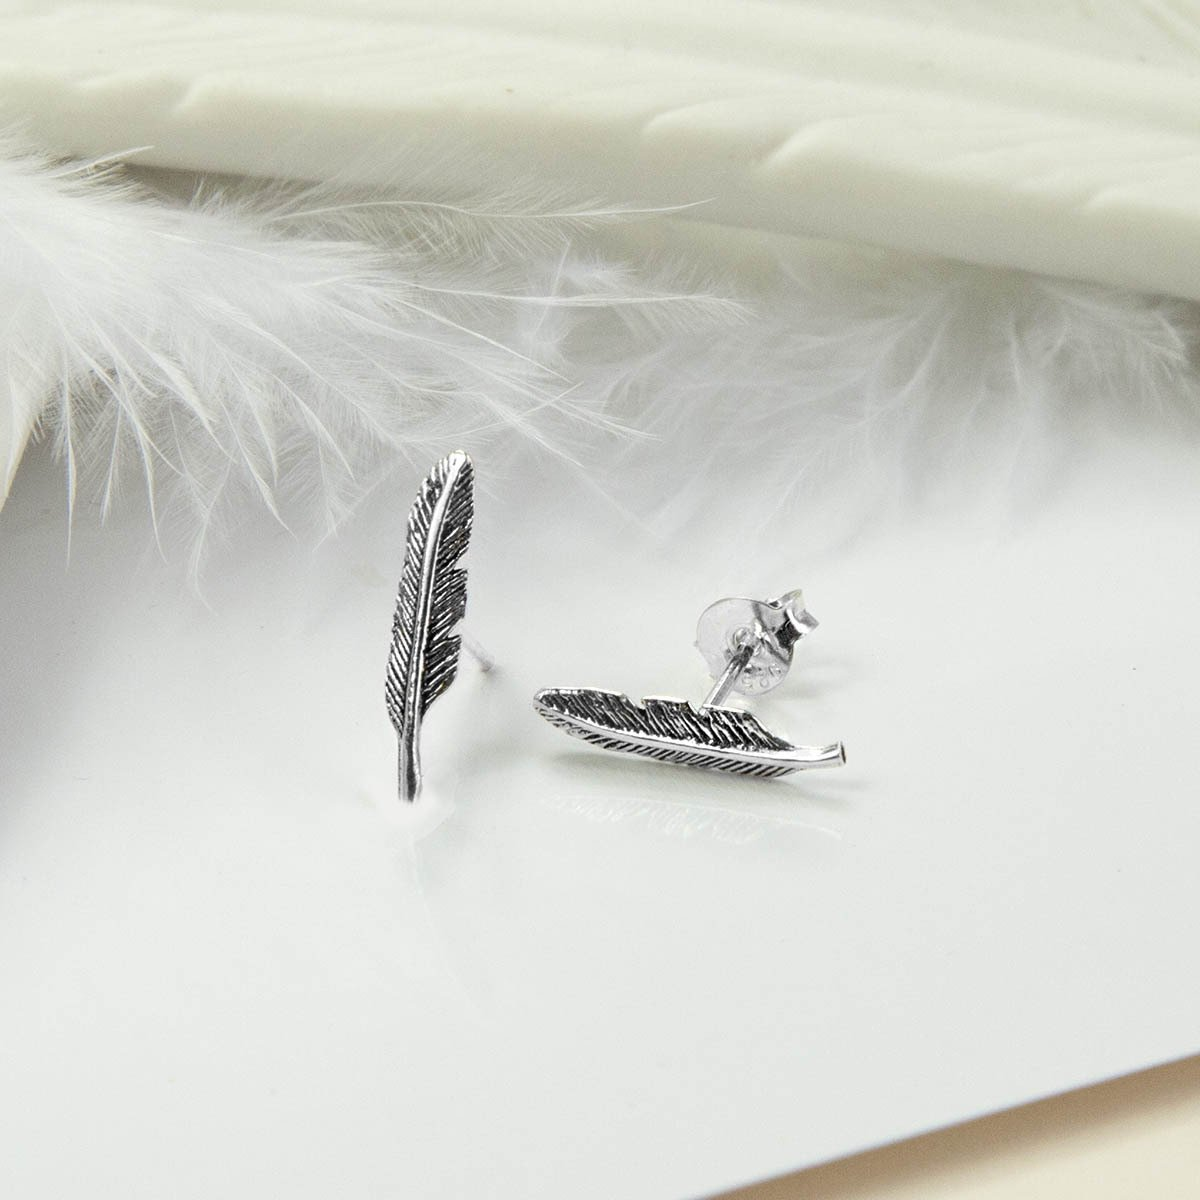 Small Silver feather  with White ceramic feather and white feather as background